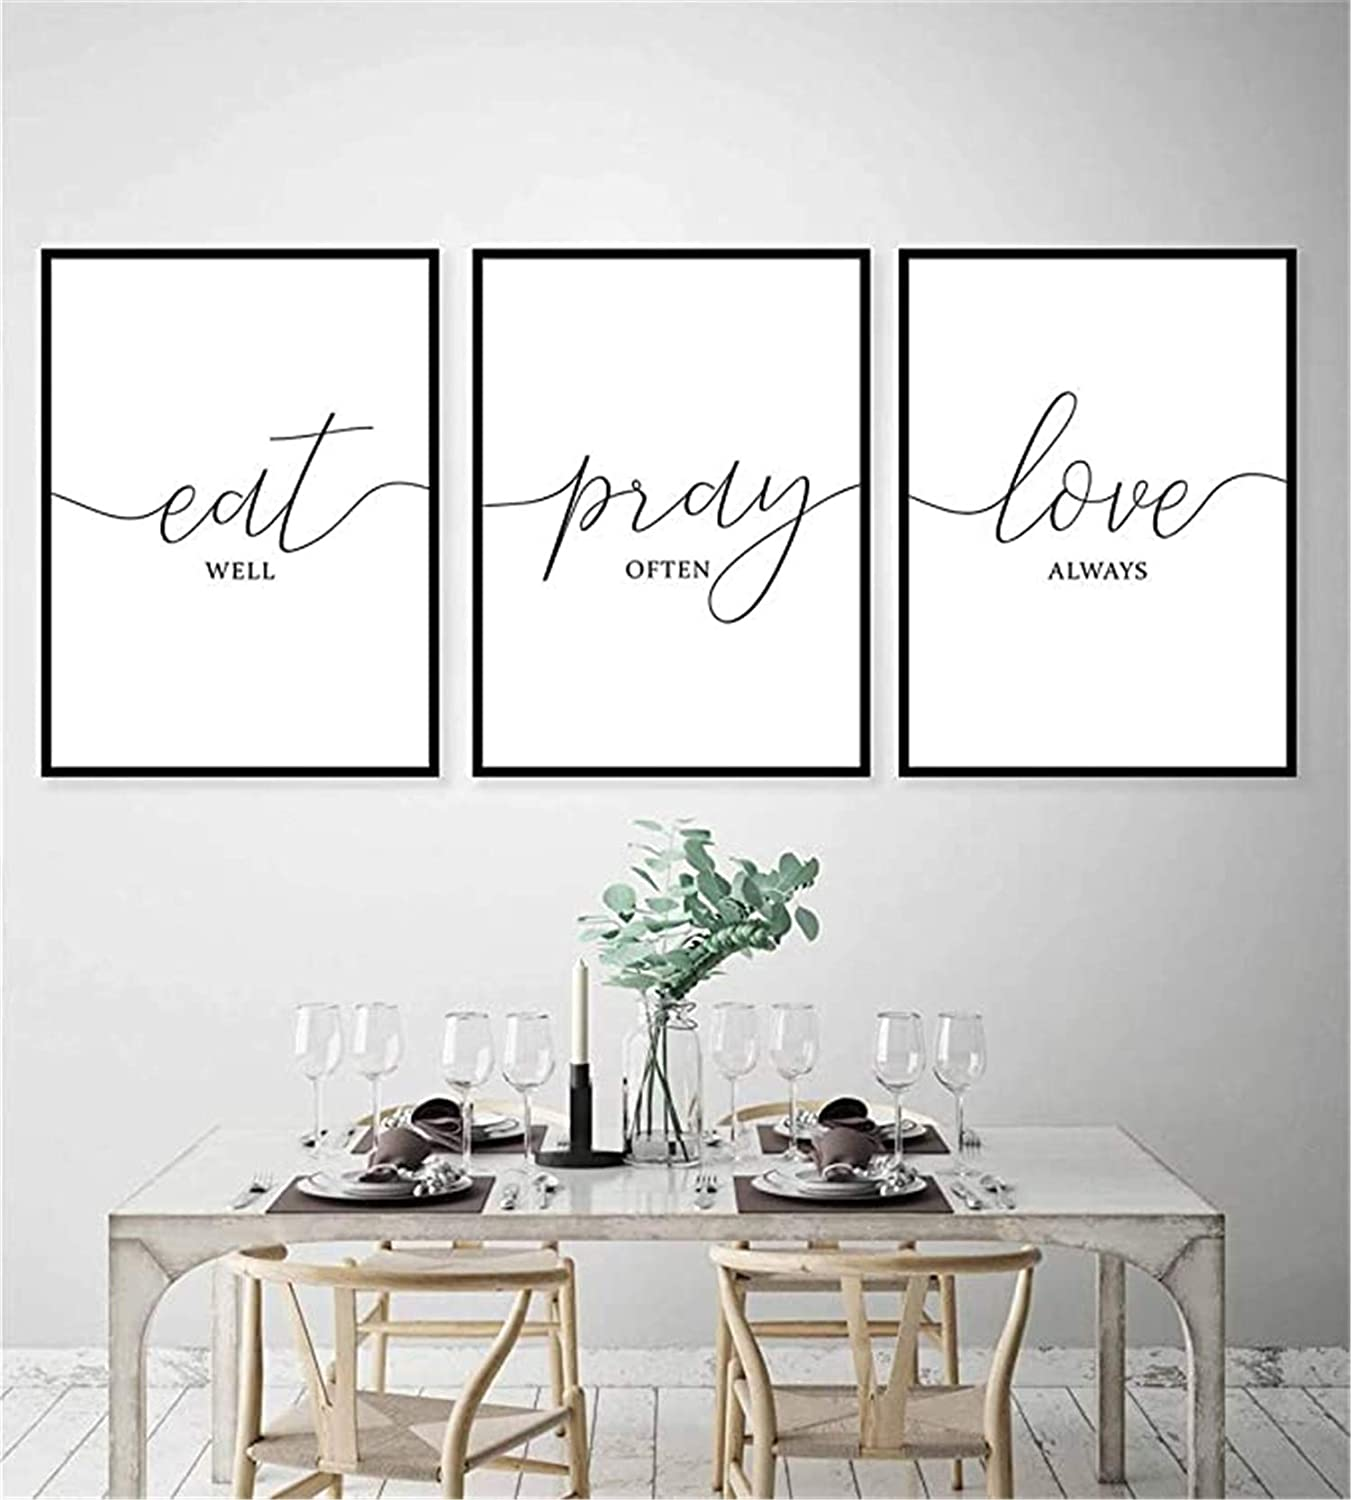 DOLUDO Wall Art Canvas 3 Pieces Eat Well Pray Offen Love Always Poster Art Prints Painting Picture for Living Room Bedroom Decor Gift Artwork No Frame 40X60cmx3